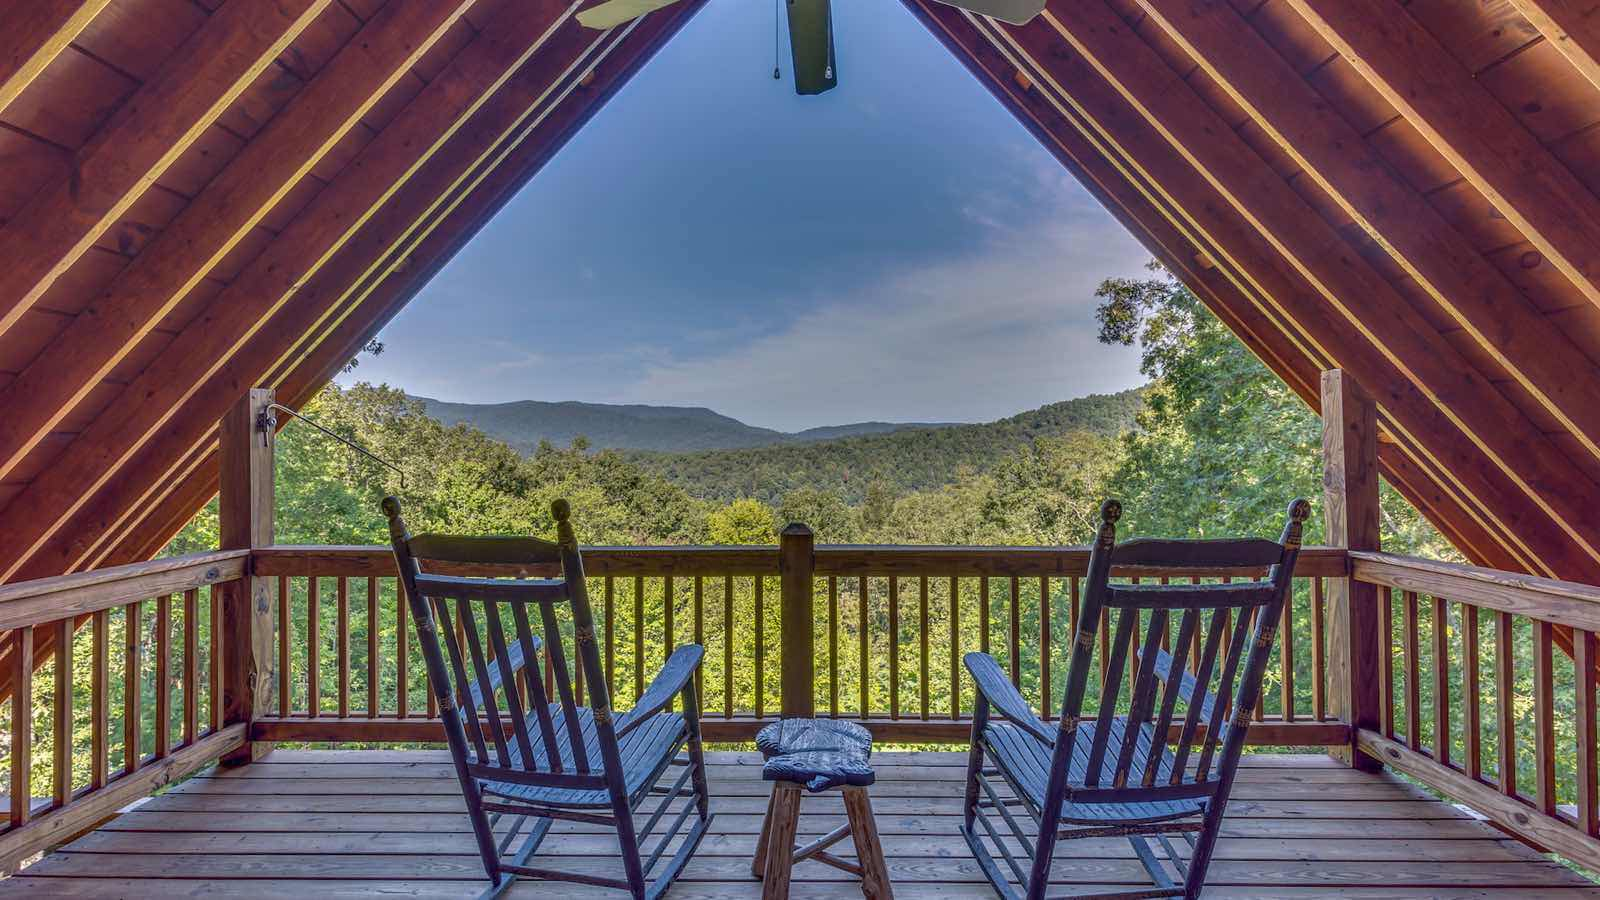 mountain bear ridge range views area rental pin cabins rentals is dahlonega overlooking of a the dancing vrbo atop perched with rich ri cabin long great beautiful